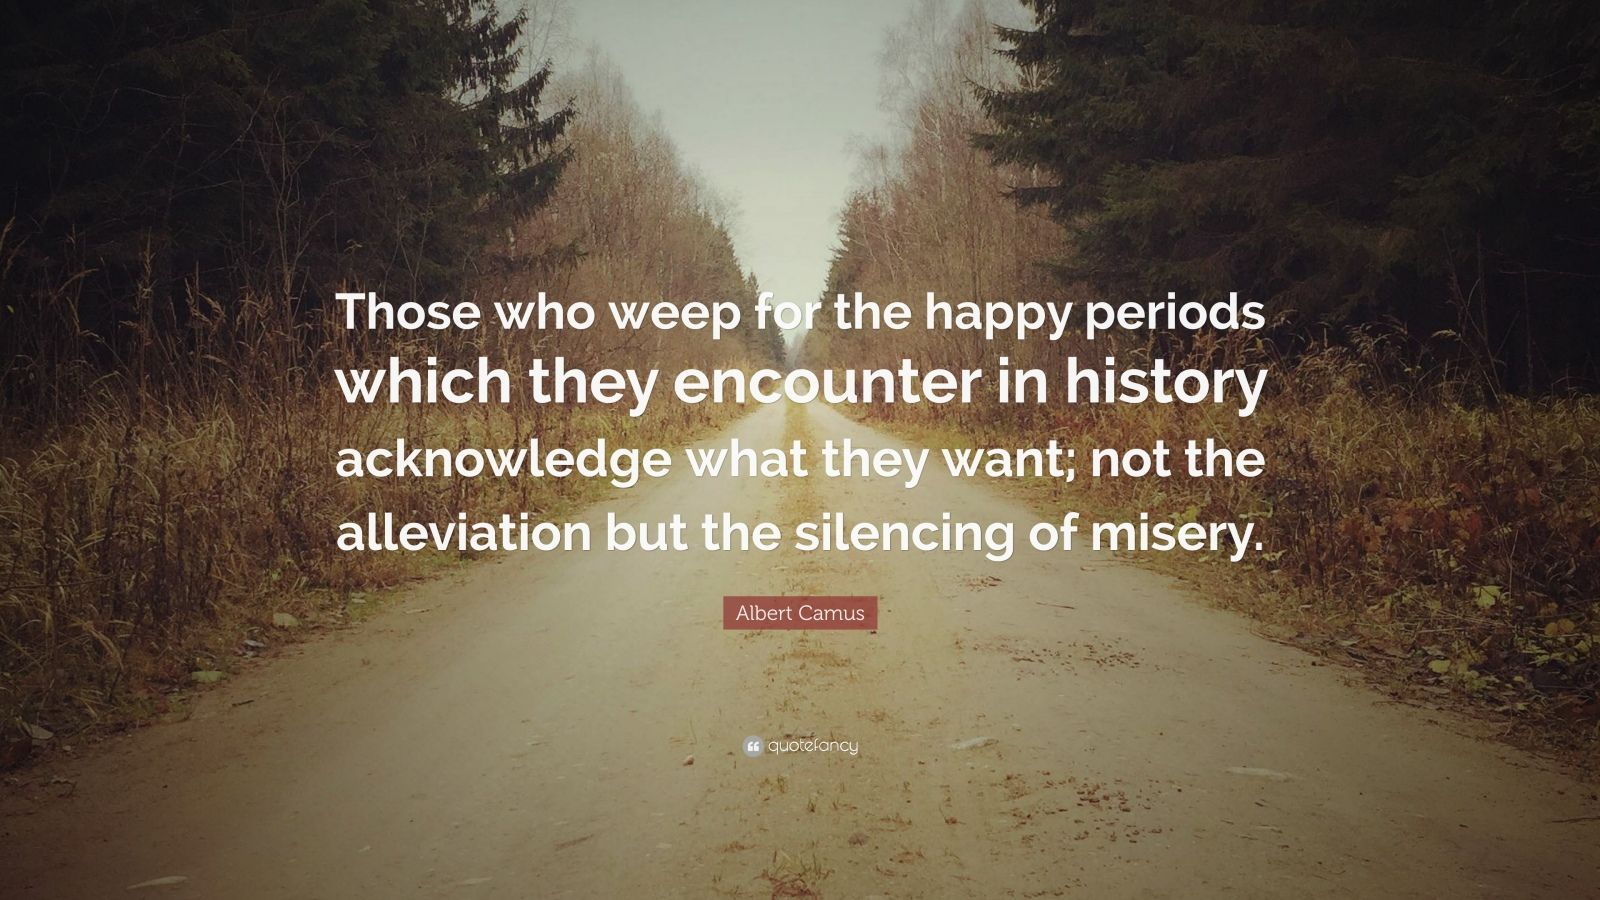 """Albert Camus Quote: """"Those who weep for the happy periods which they encounter in history acknowledge what they want; not the alleviation but the silencing of misery."""""""